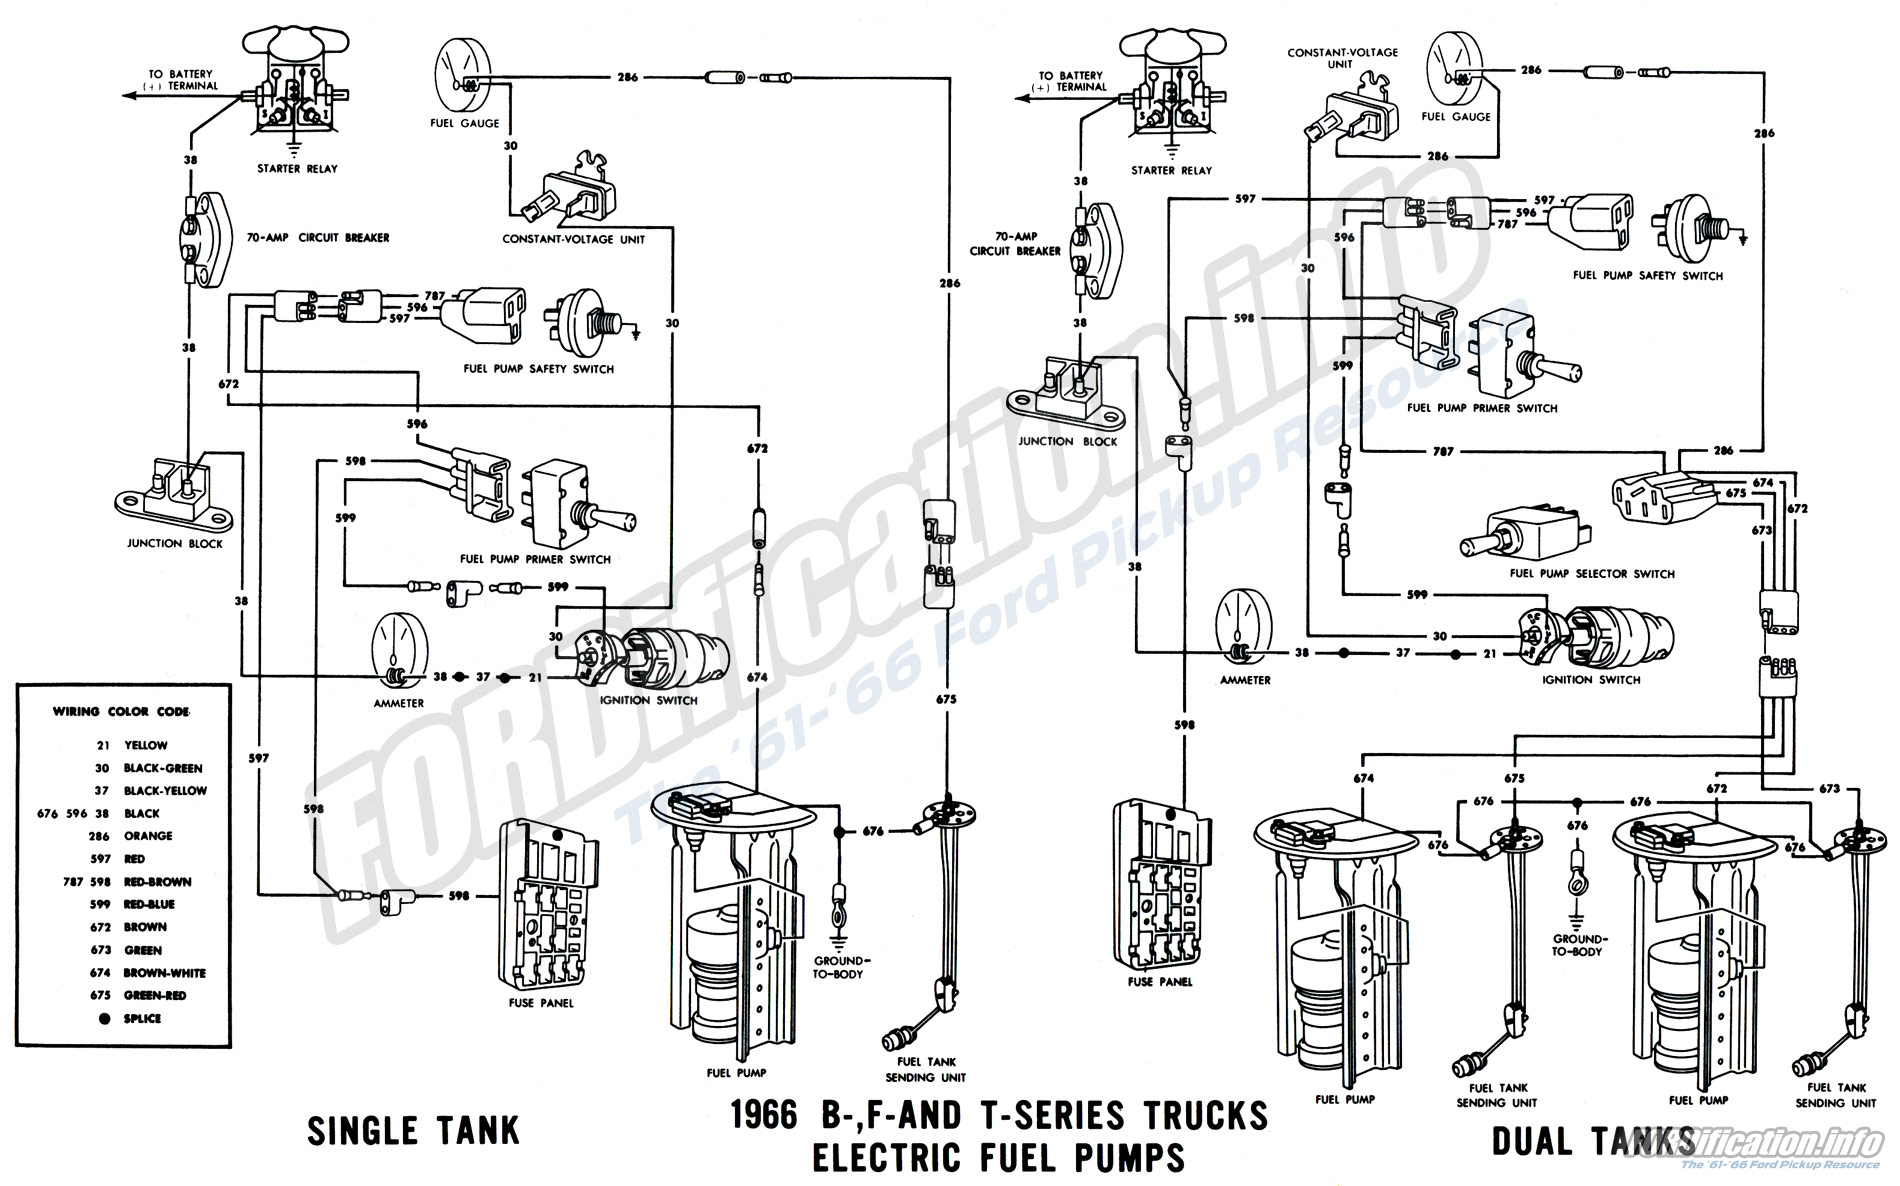 1965 Ford Fairlane Fuse Box. Ford. Auto Fuse Box Diagram